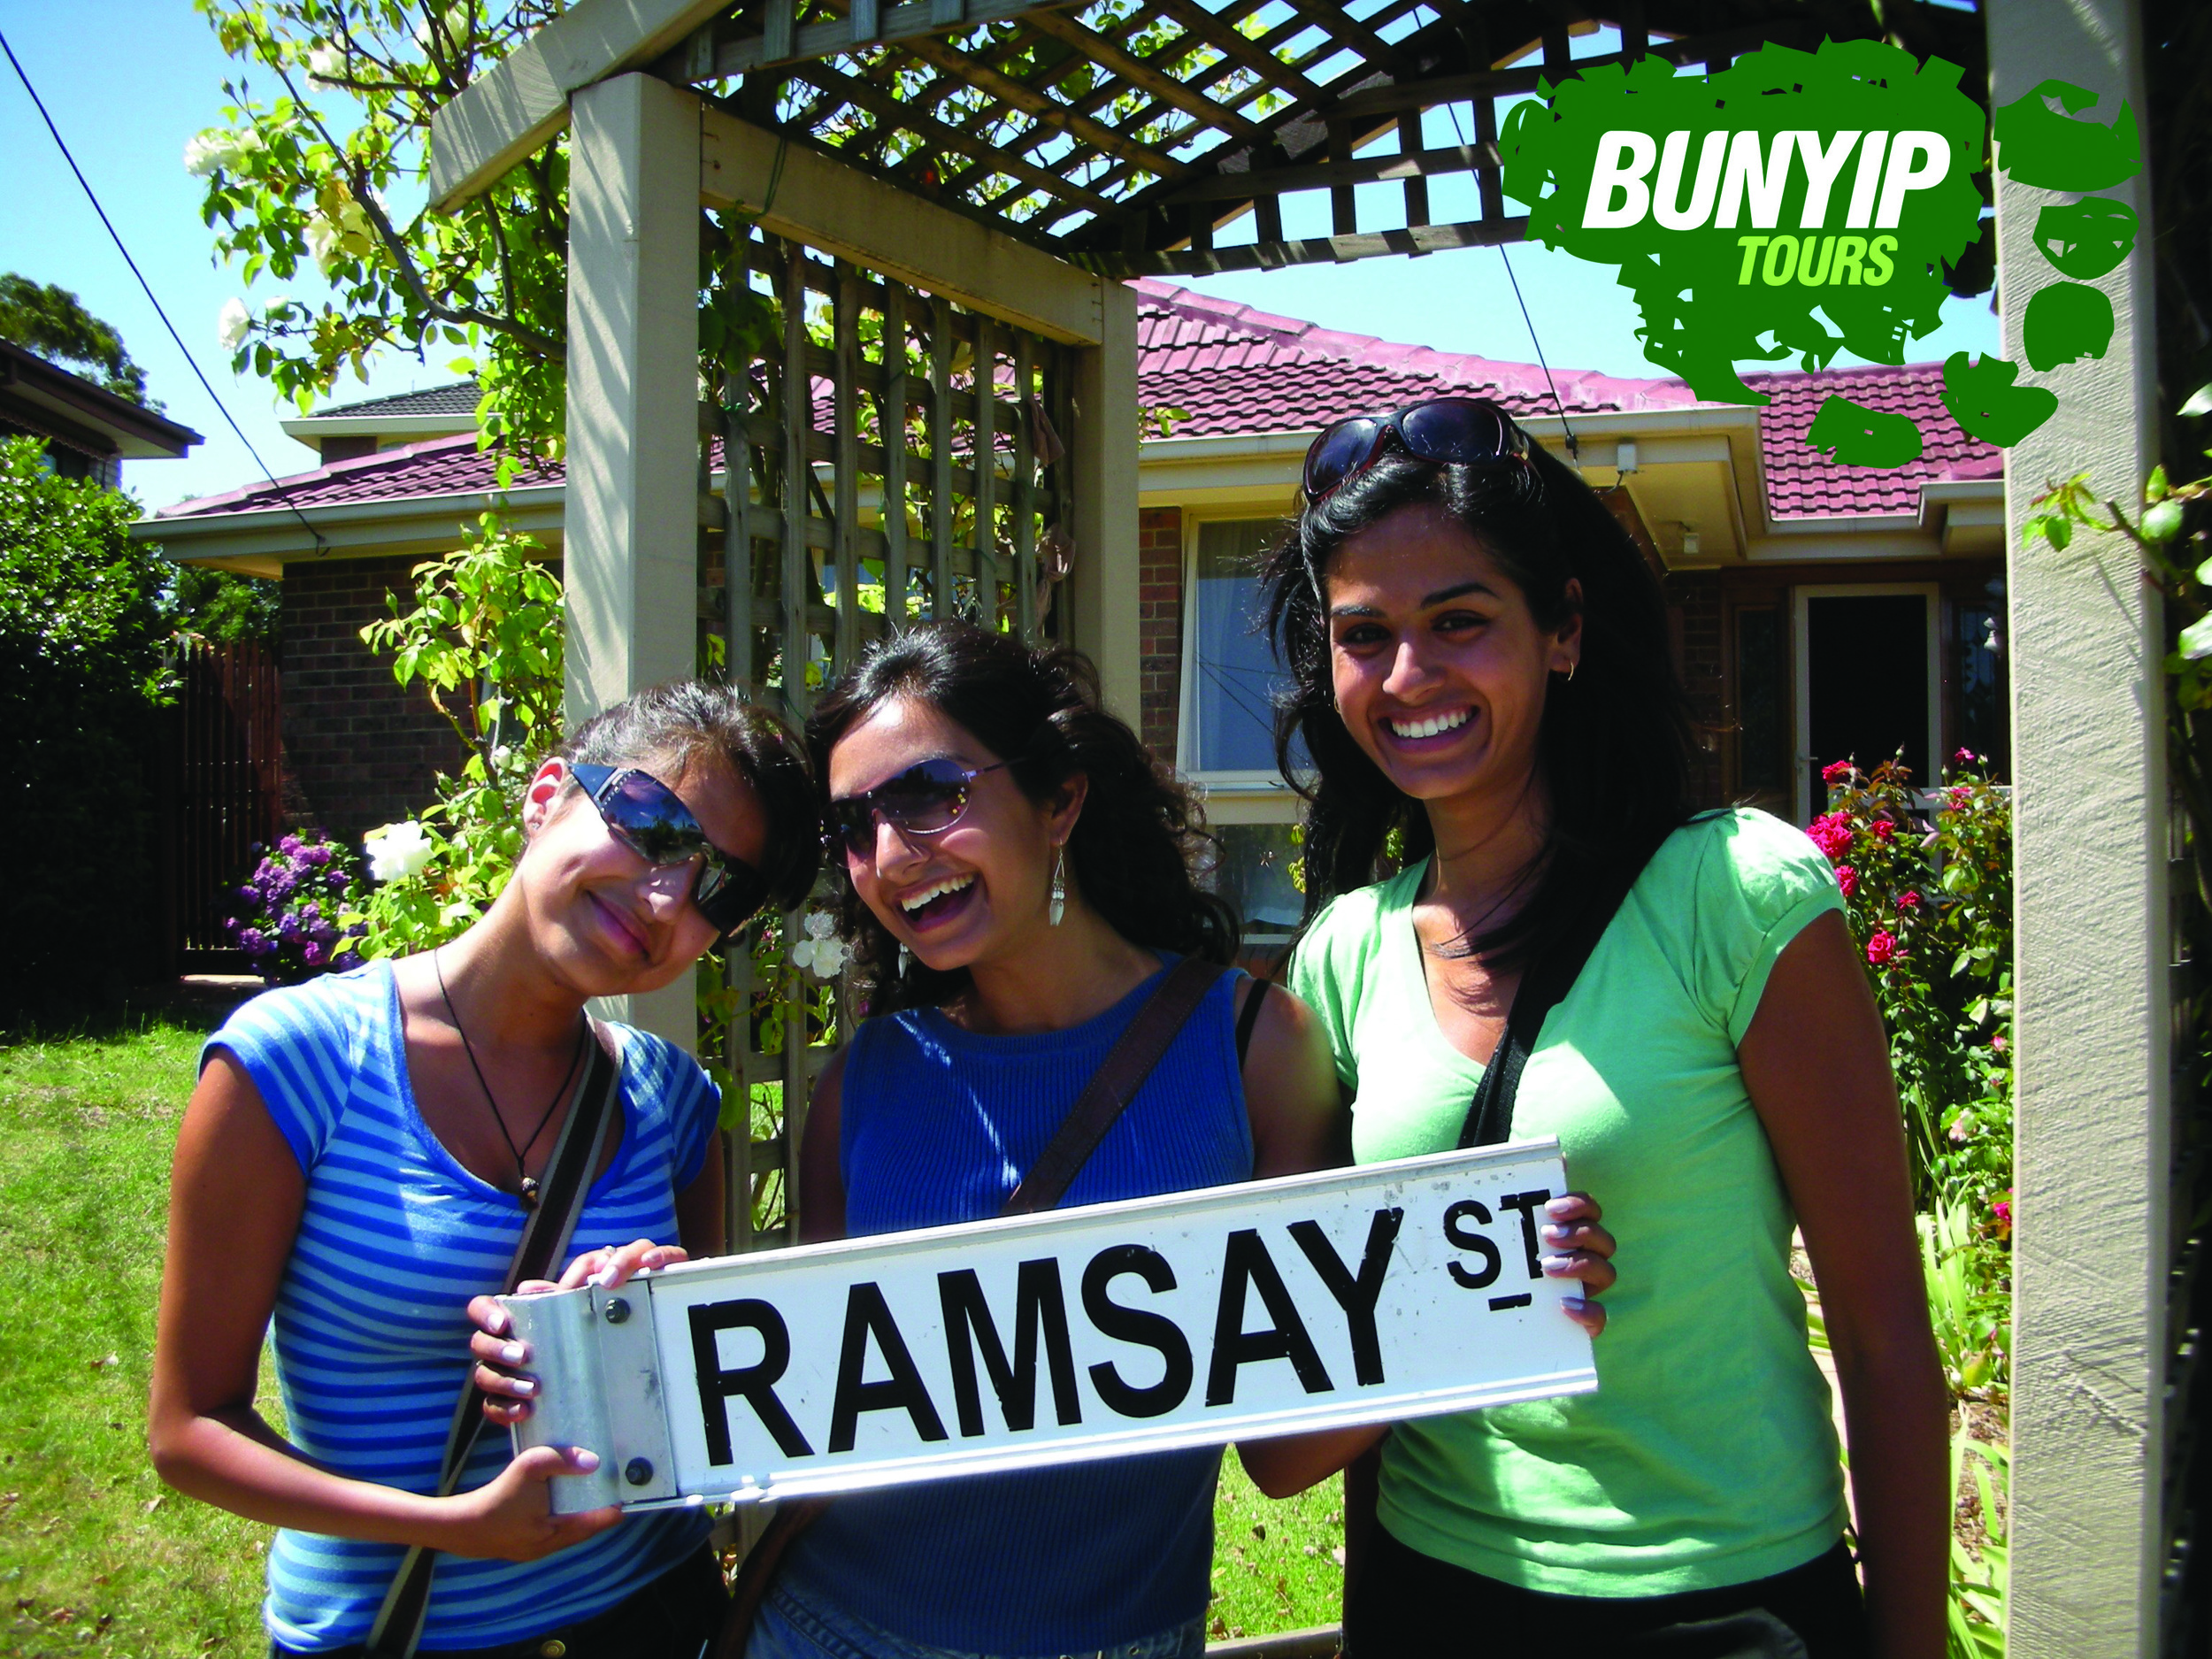 Fans holding Ramsay St Sign